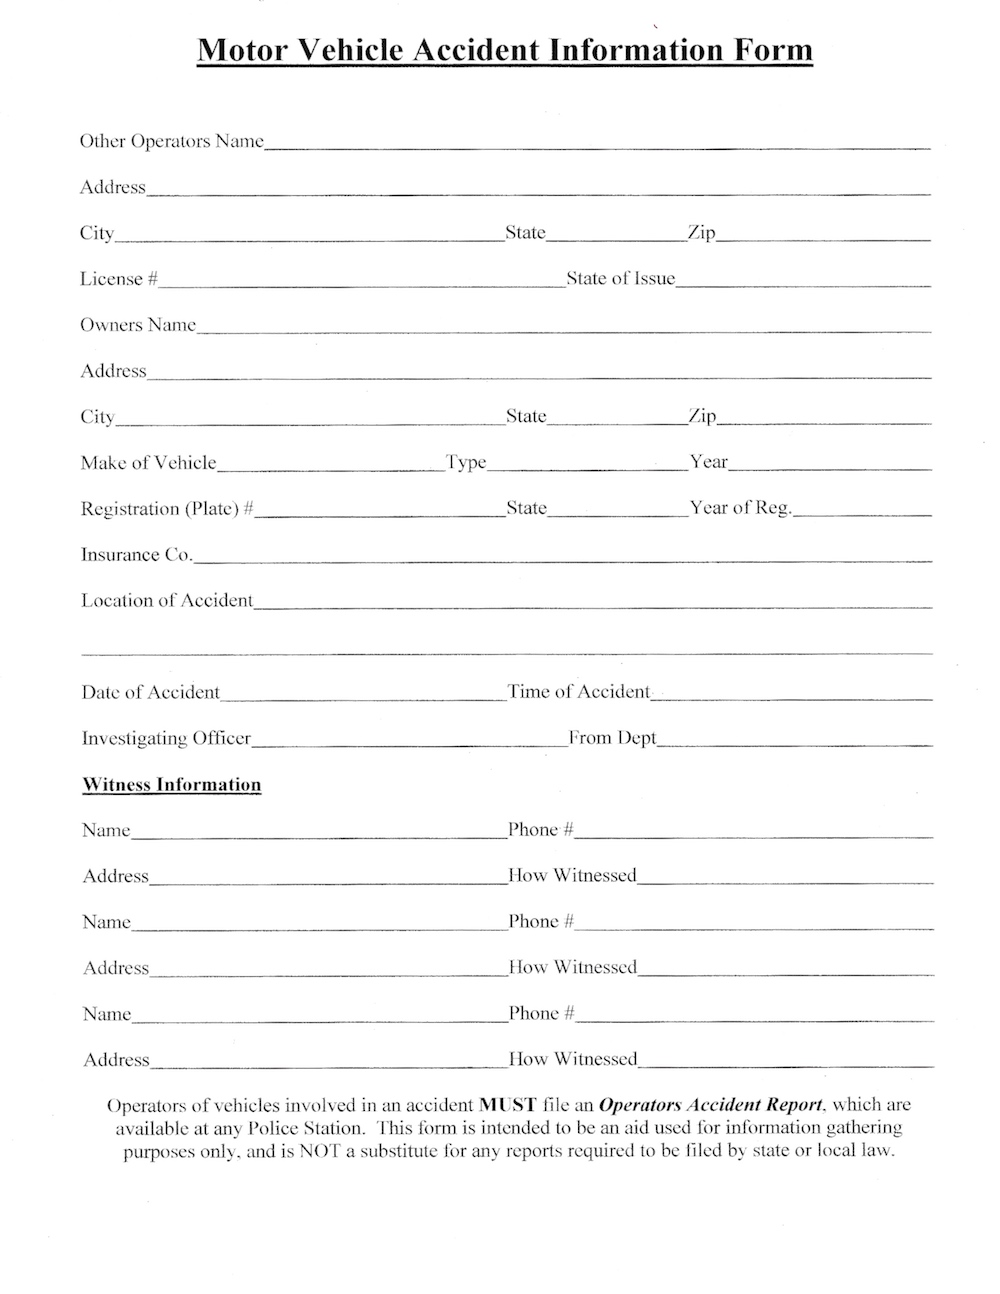 Motor Vehical Accident Info Form